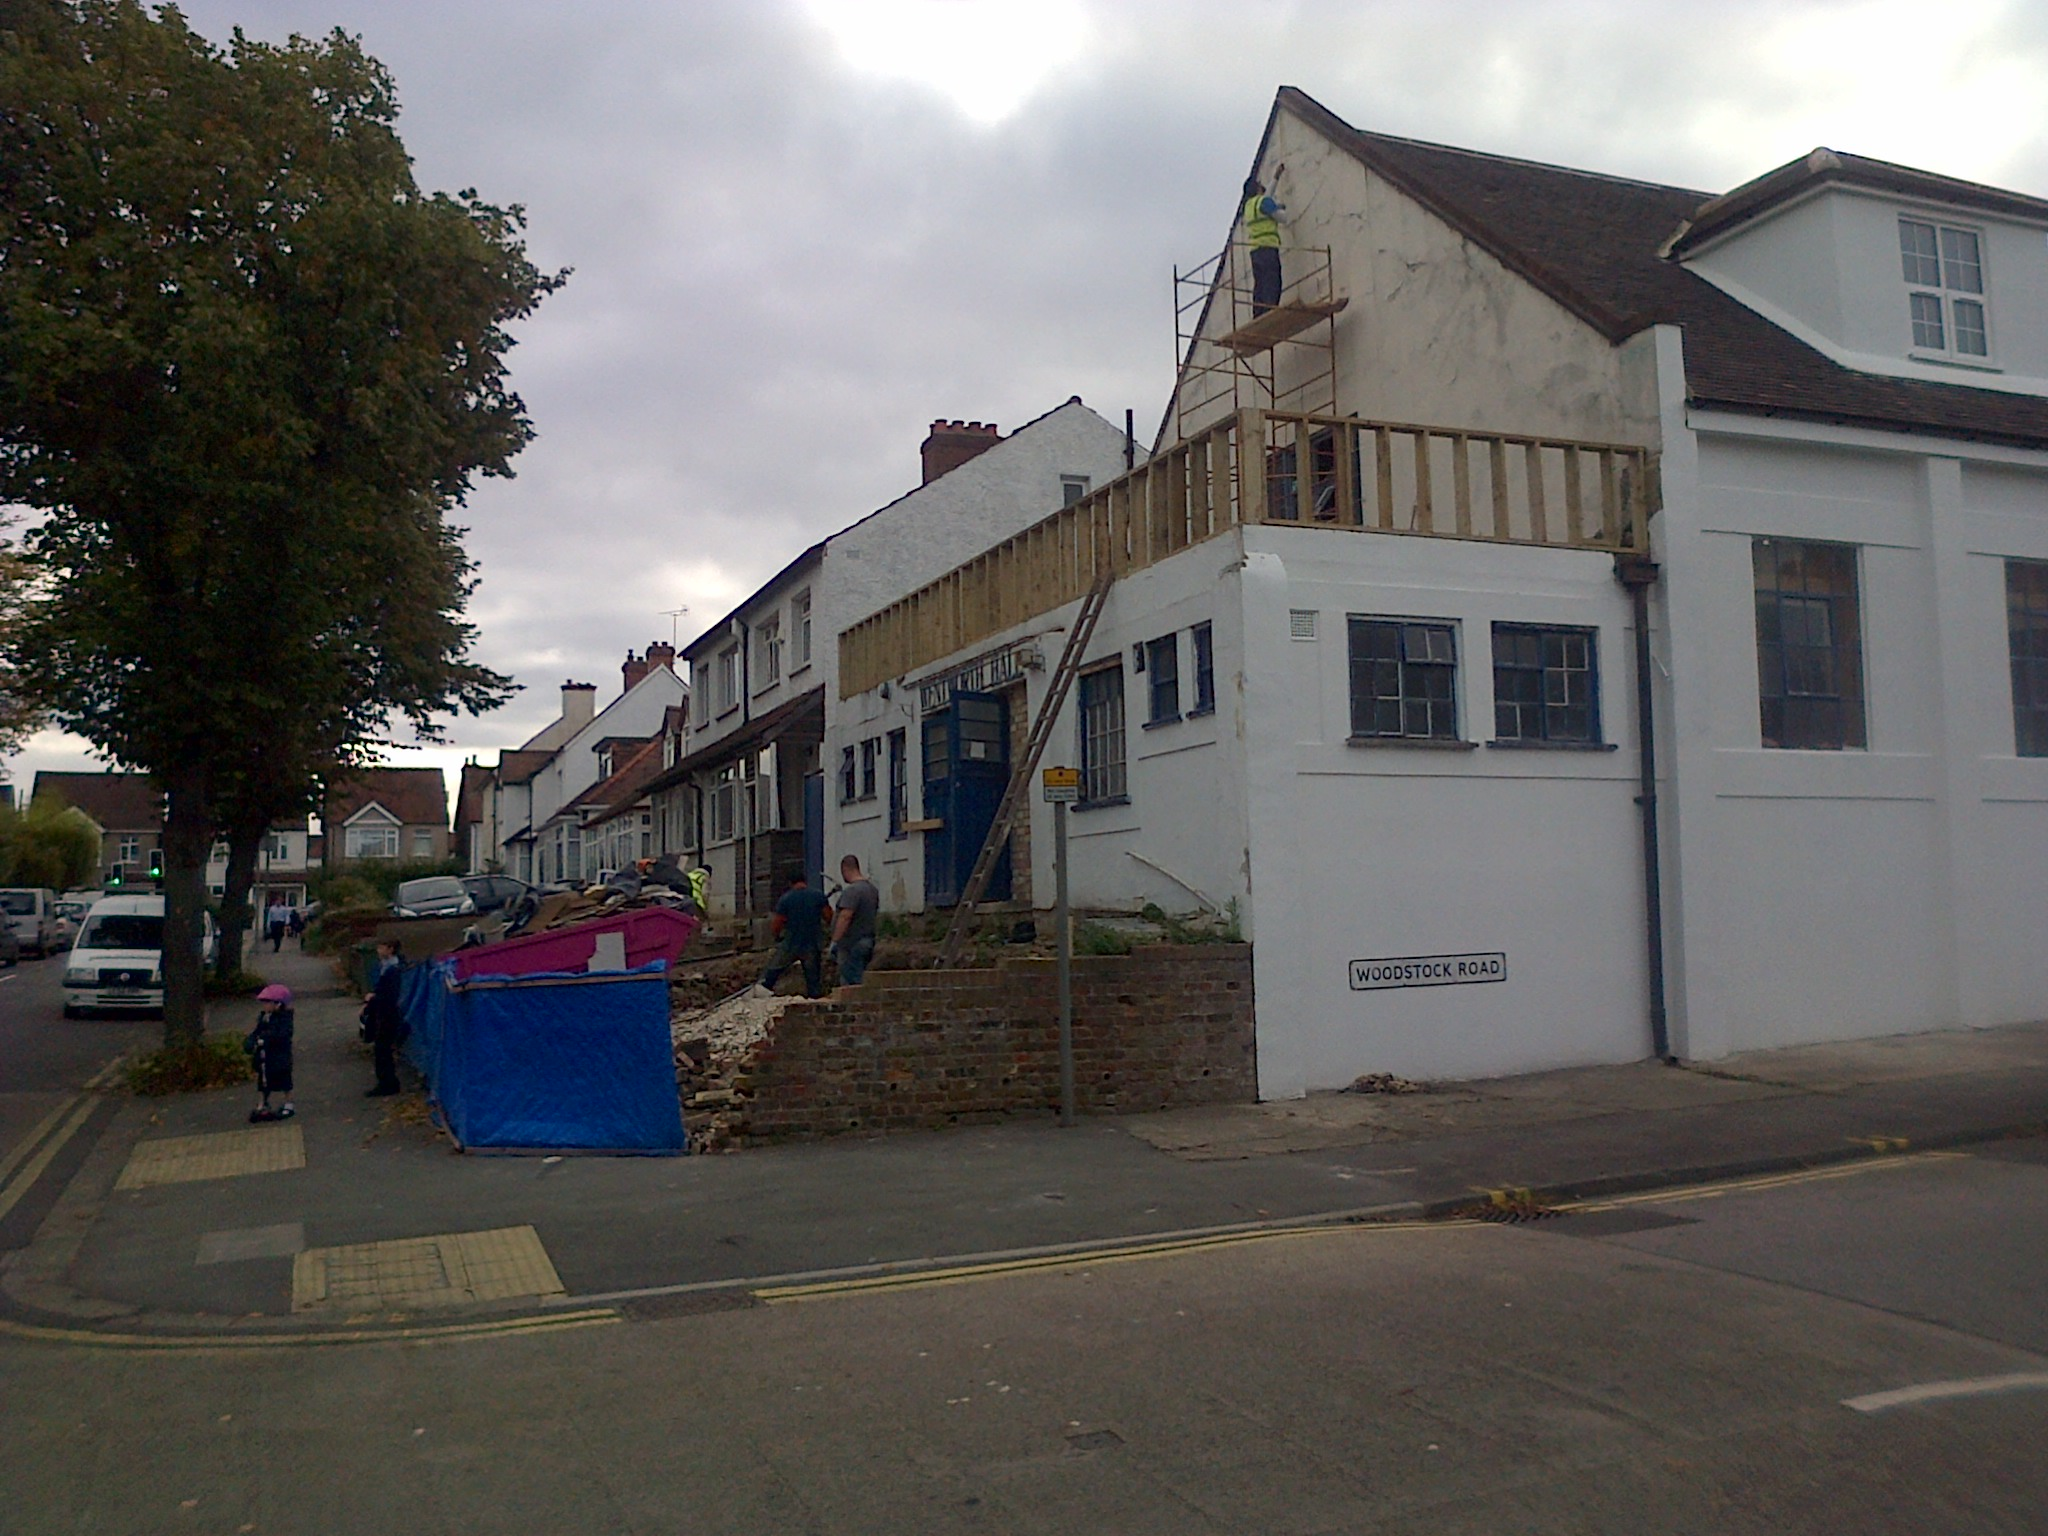 Wentworth Hall Progress Photo Carshalton Central Ward